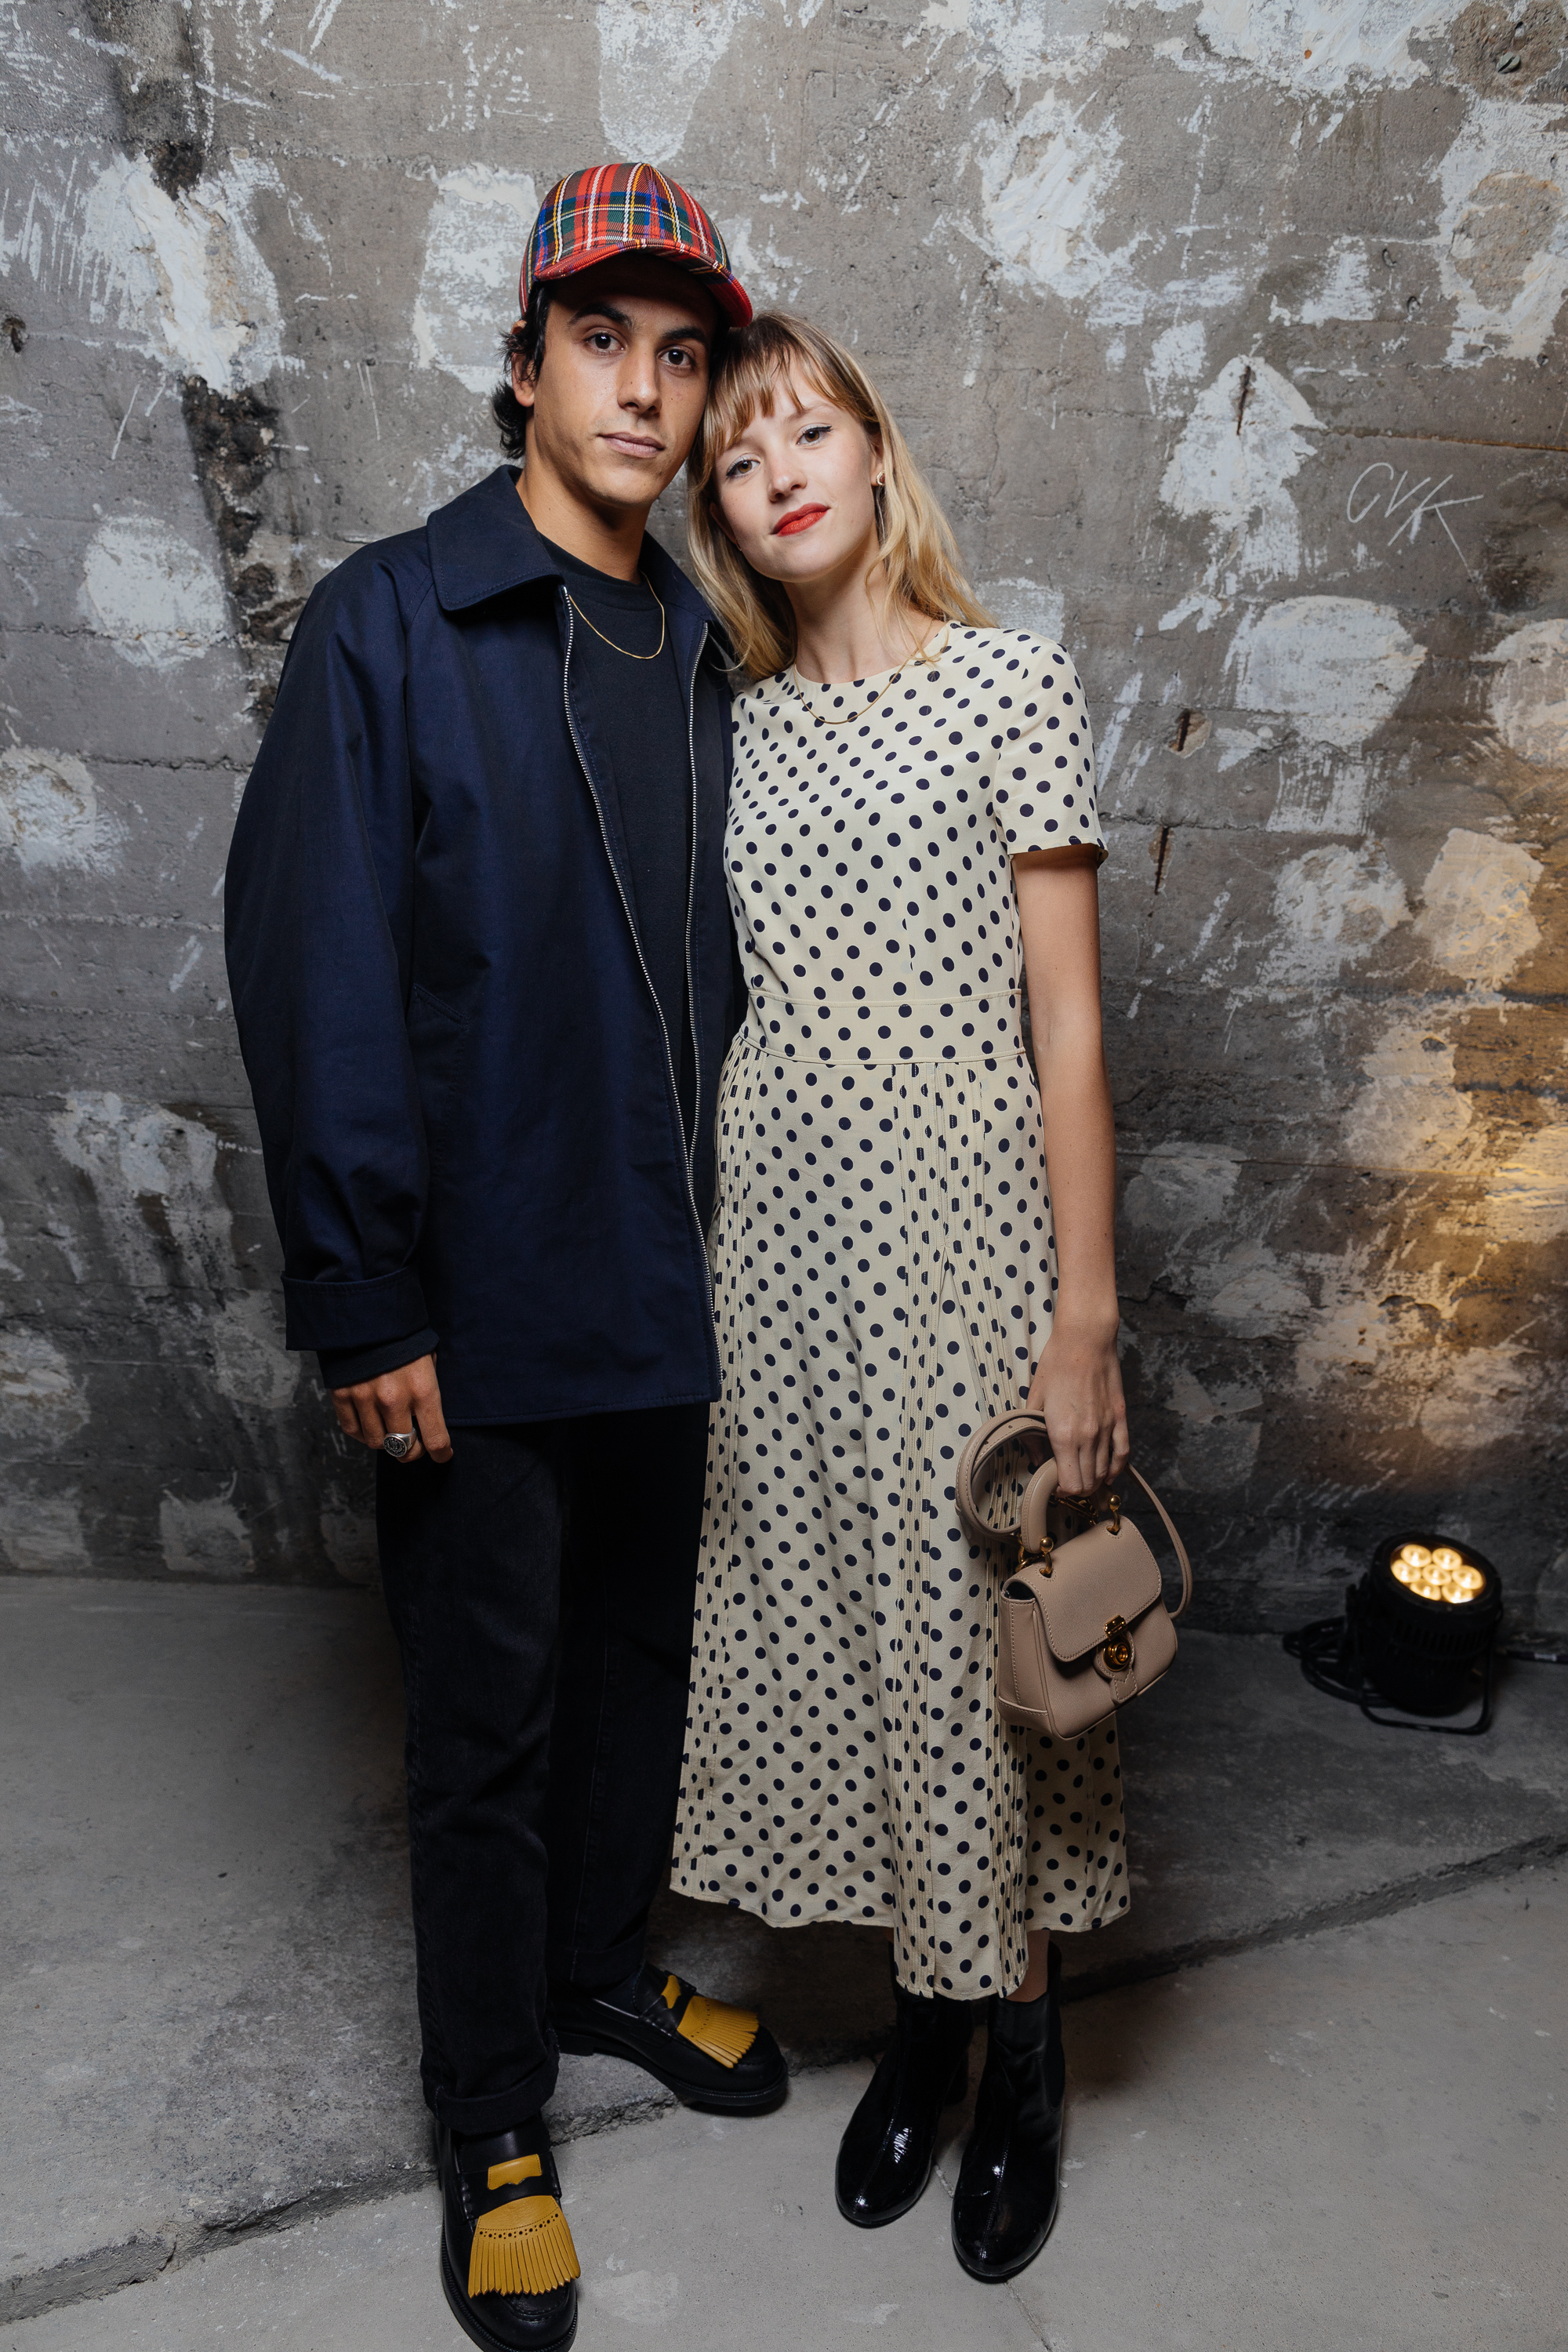 Leo Walk and Angele at a private view of 'Here We Are' in Paris